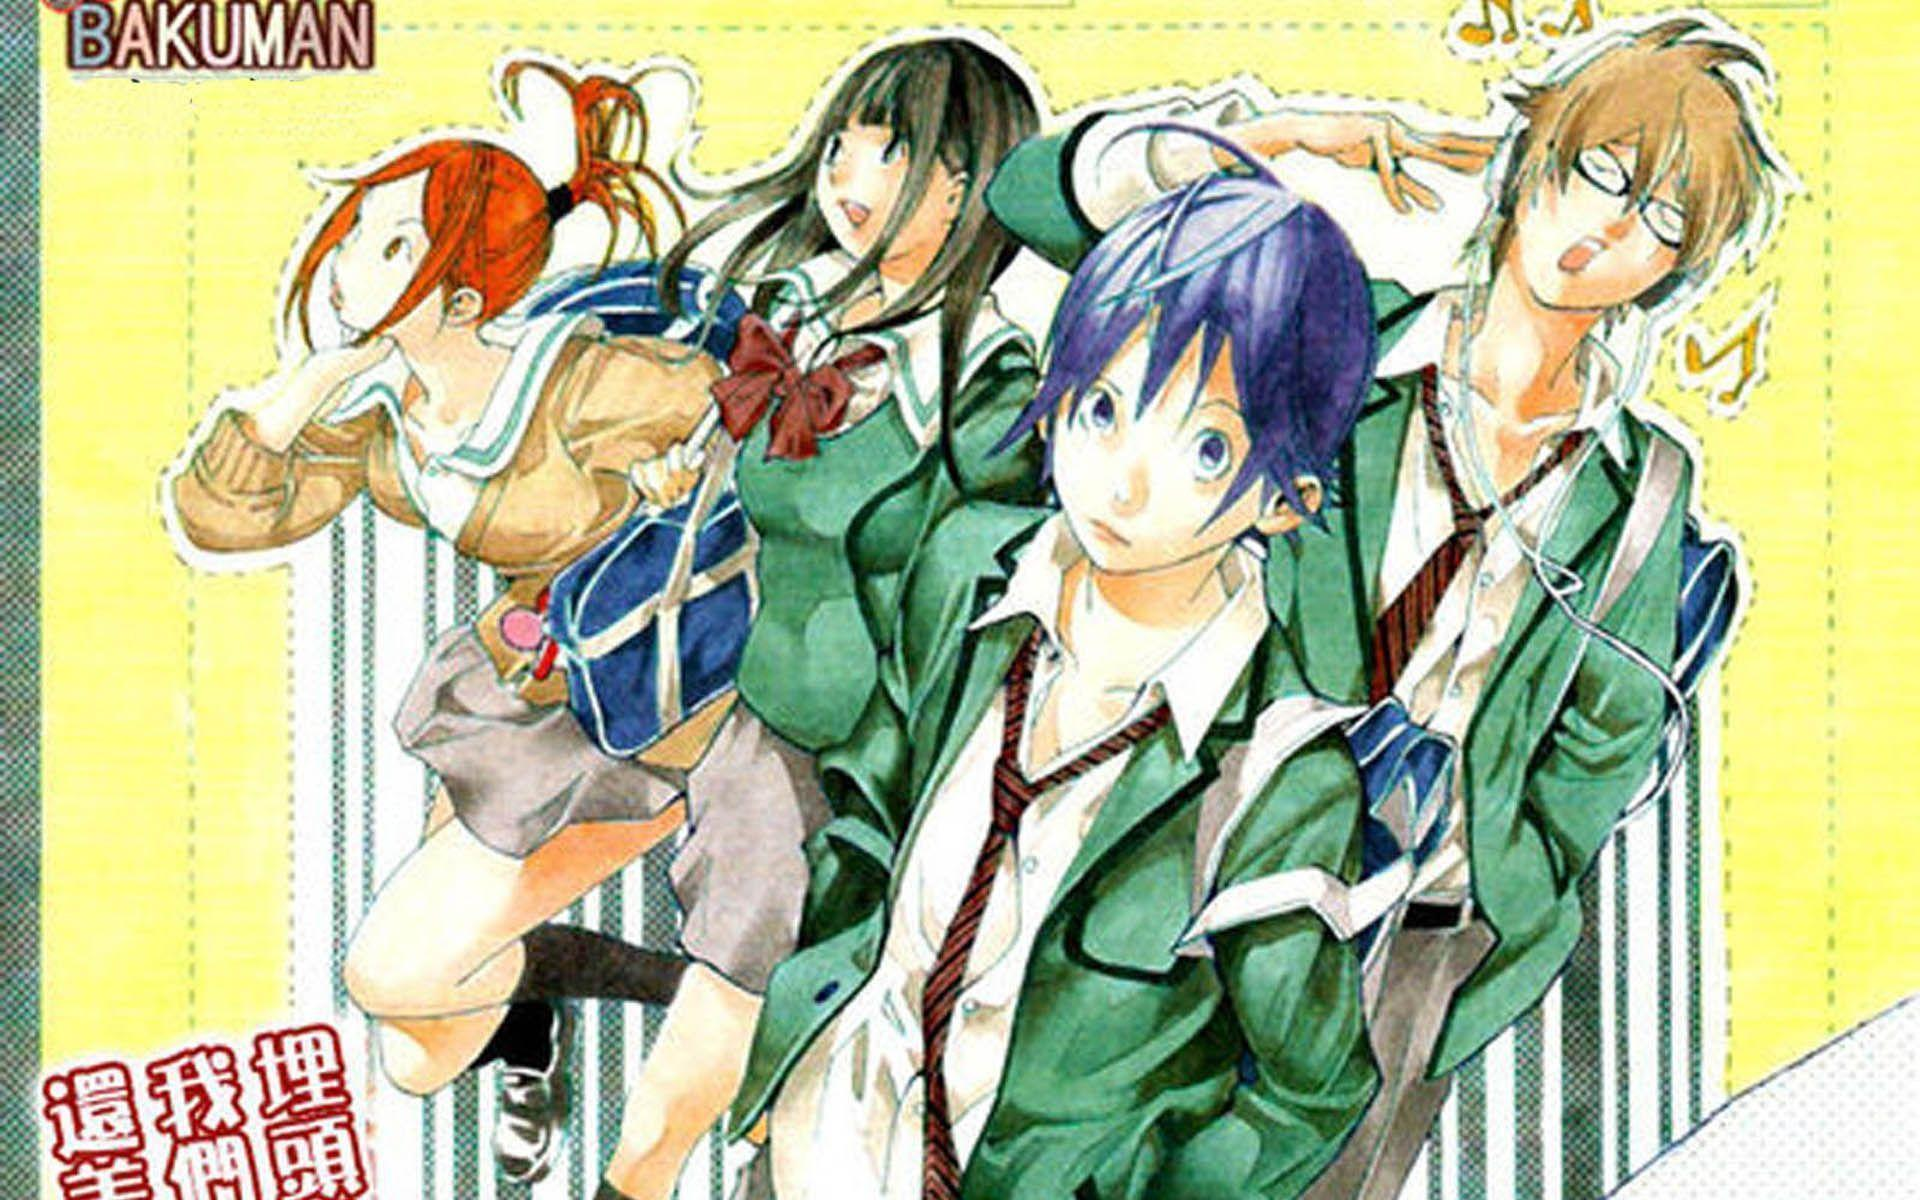 Bakuman 1920x1200 Wallpapers, 1920x1200 Wallpapers & Pictures Free